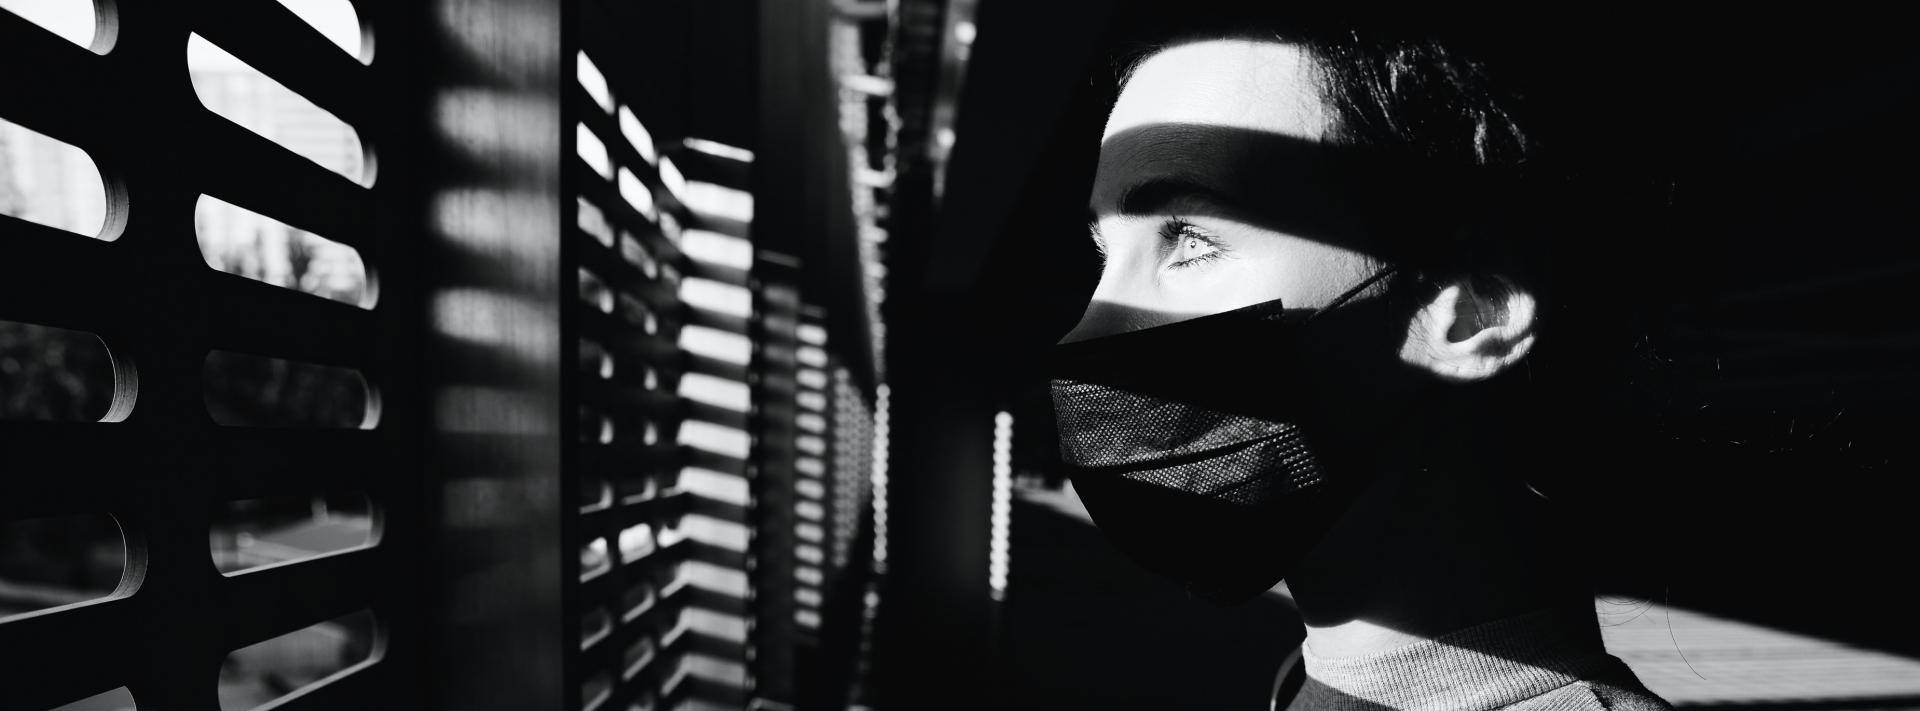 woman looking out blinds while wearing a mask - black and white image